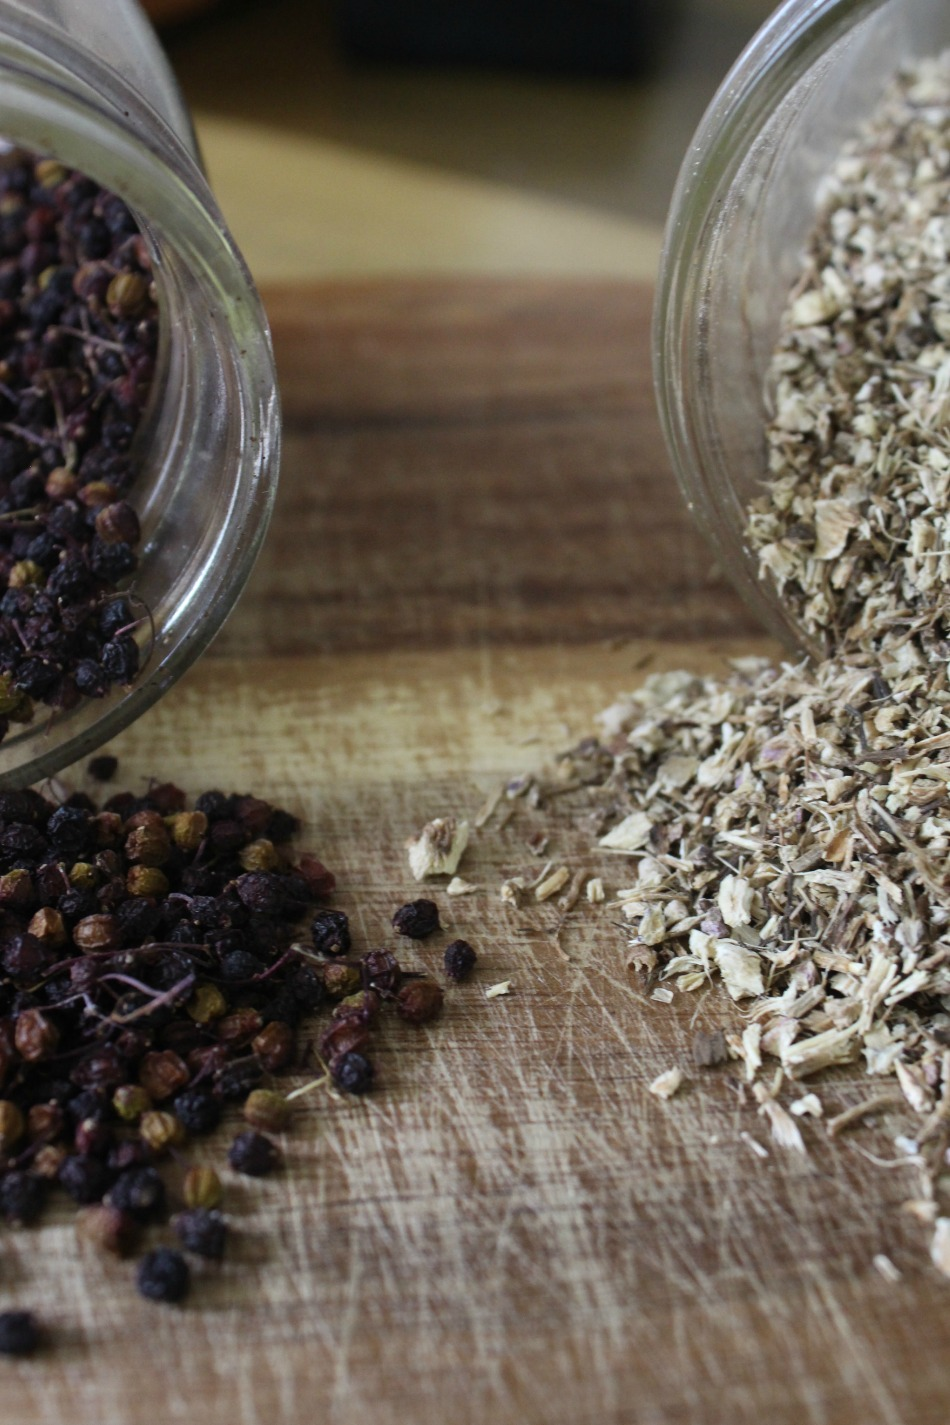 Echinacea Versus Elderberry For Cold & Flu Season | Growing Up Herbal | Learn more about echinacea versus elderberry — how they compare in action and how to use them as preventatives during cold and flu season.